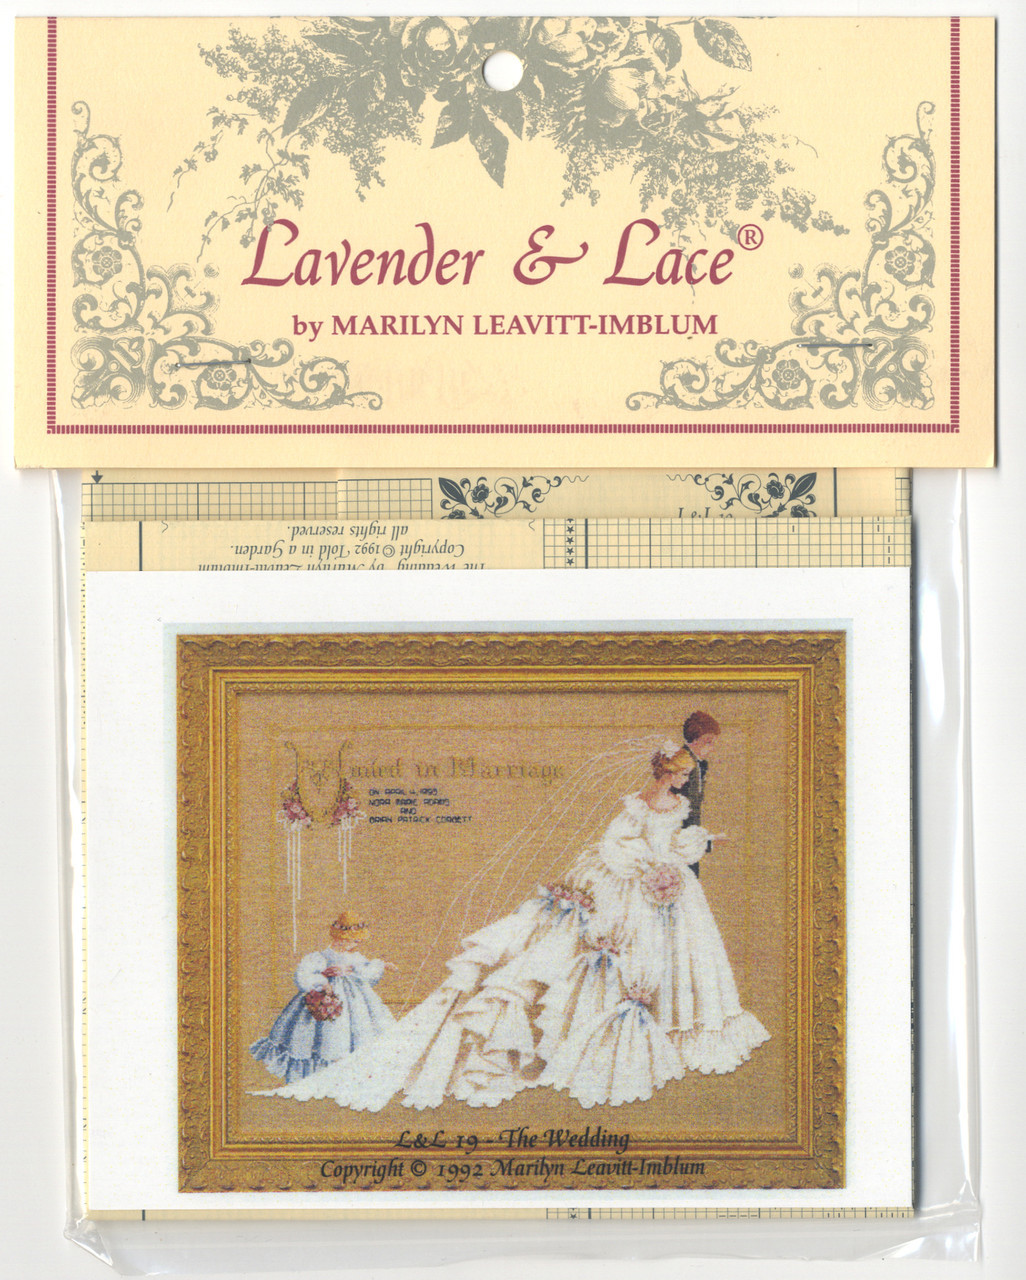 Lavender and Lace - The Wedding